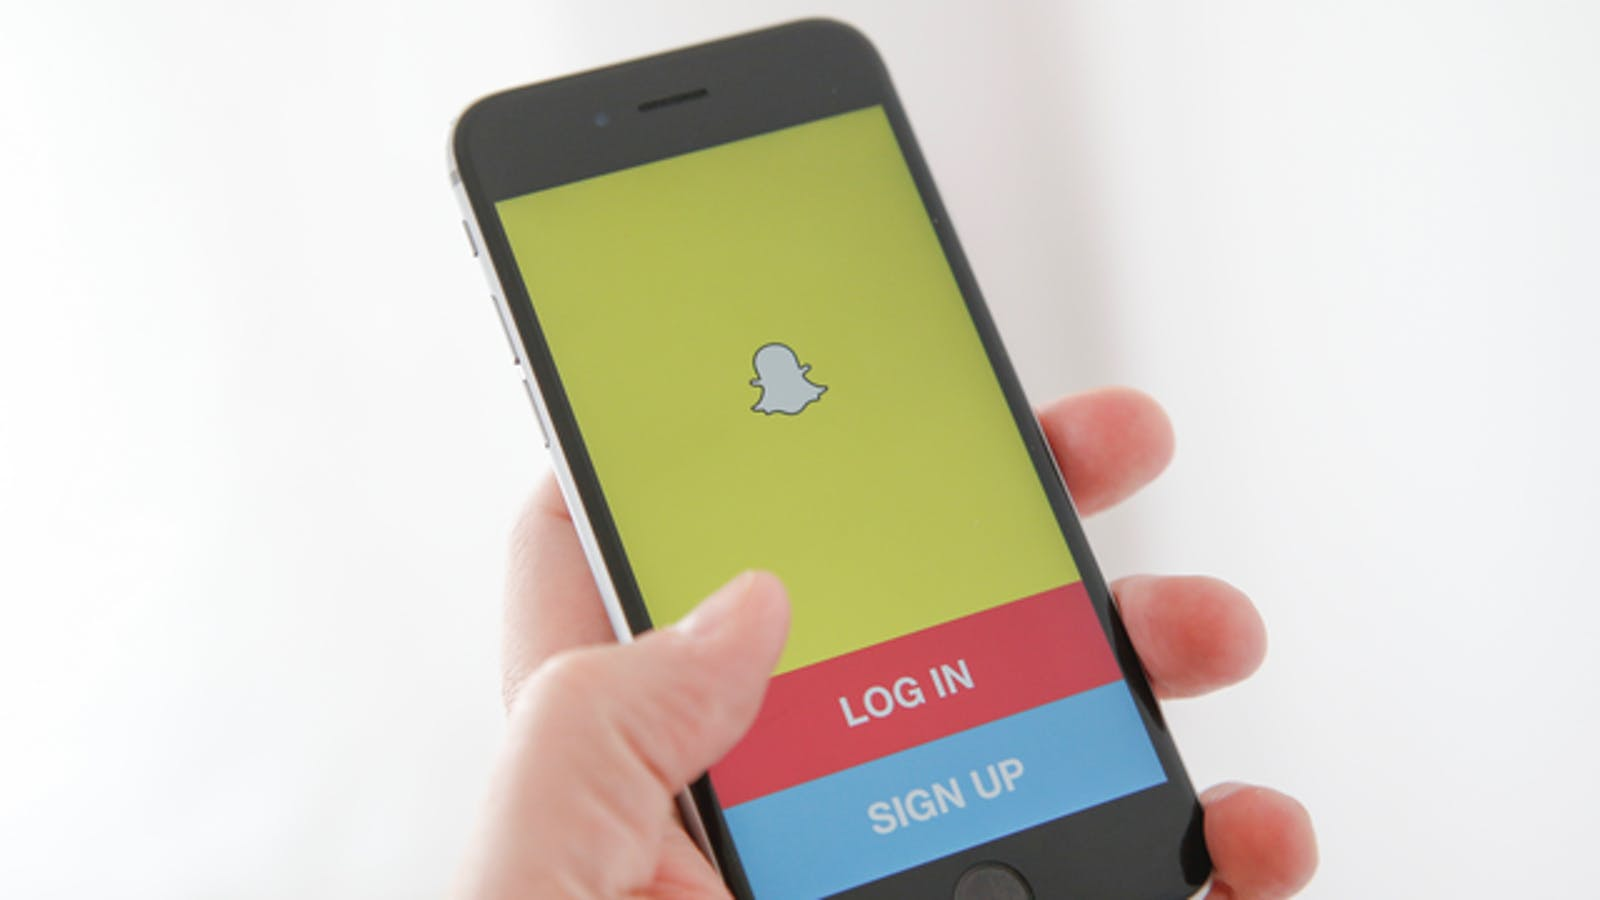 Snapchat's app open on an iPhone. Photo: AP